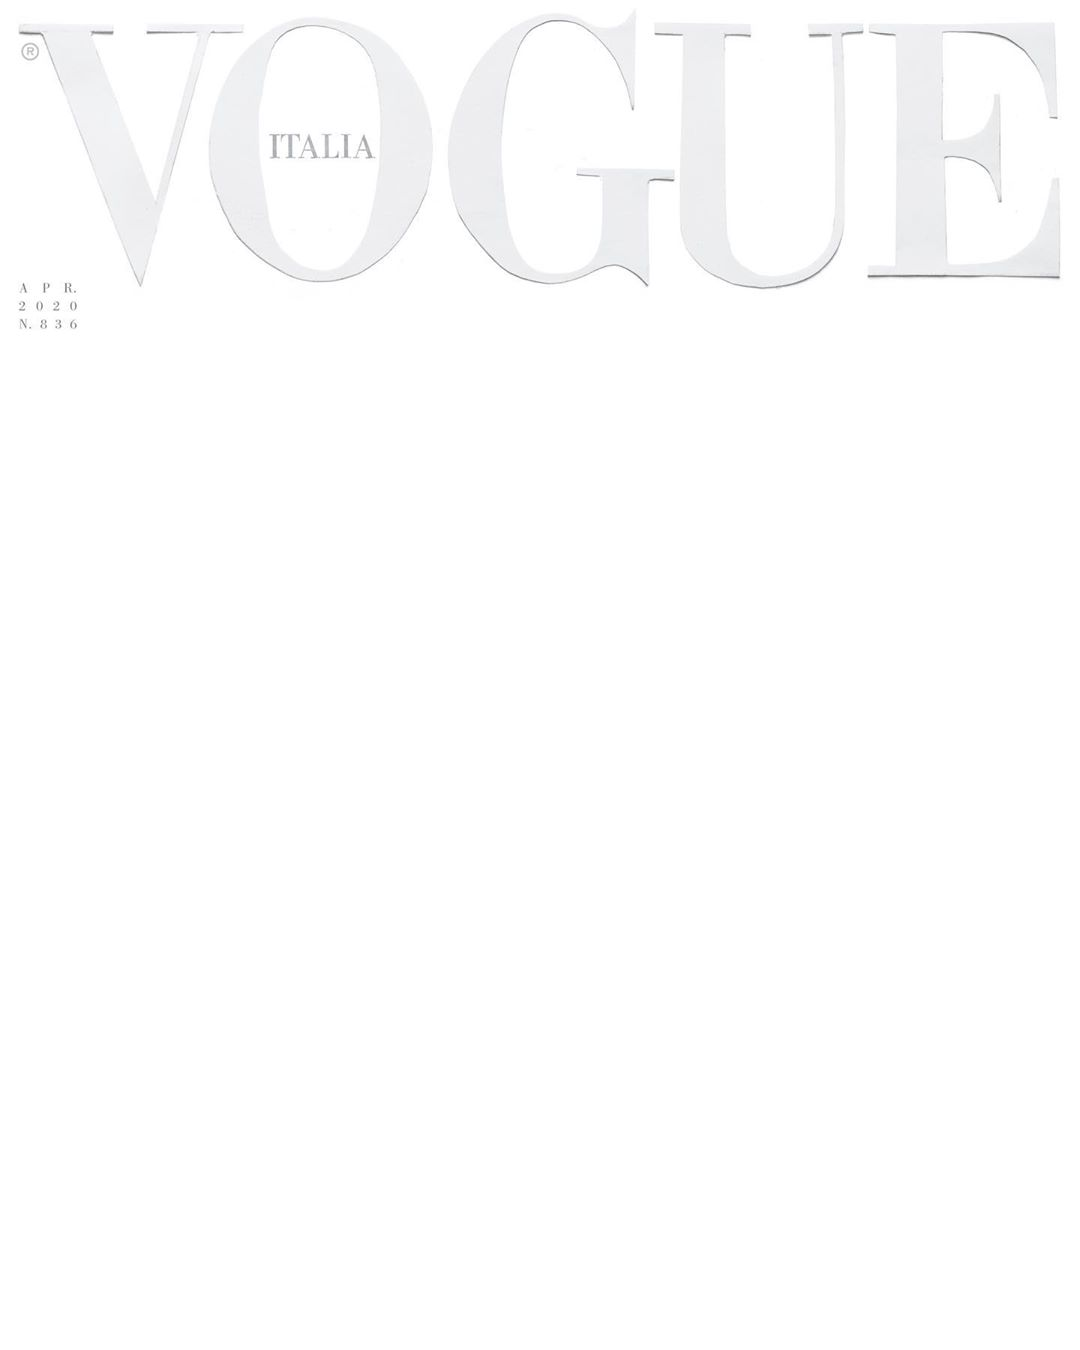 COVID-19: Vogue Italia makes a powerful statement with blank white cover